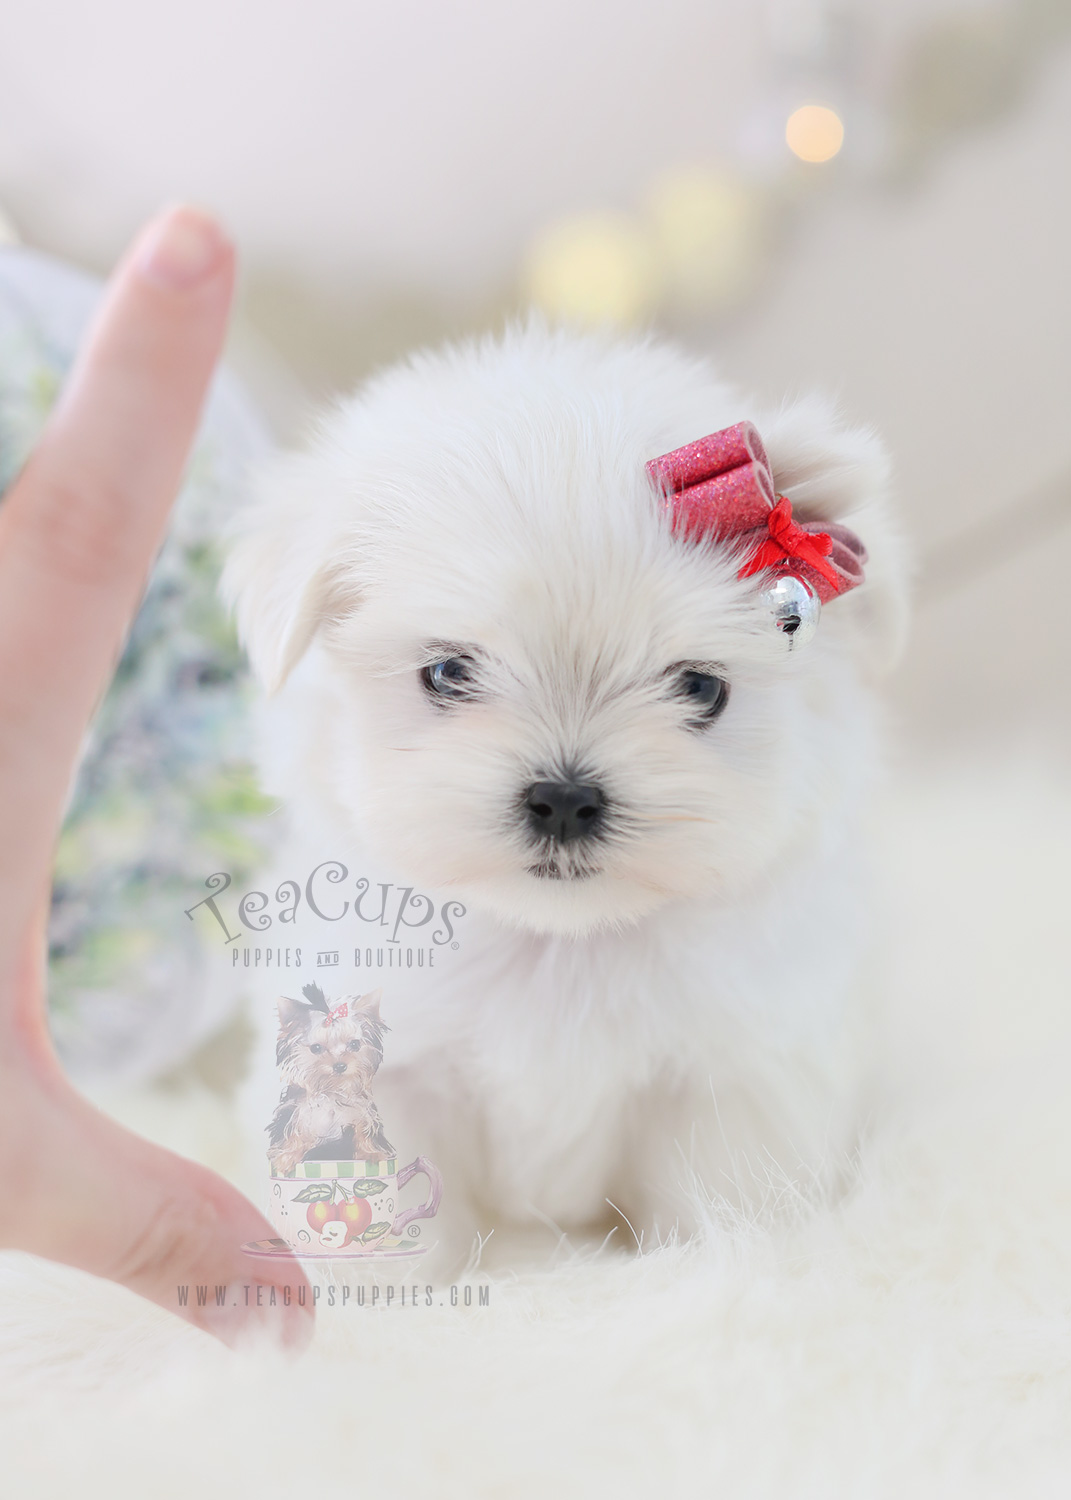 teacups puppies maltese available teacups puppies